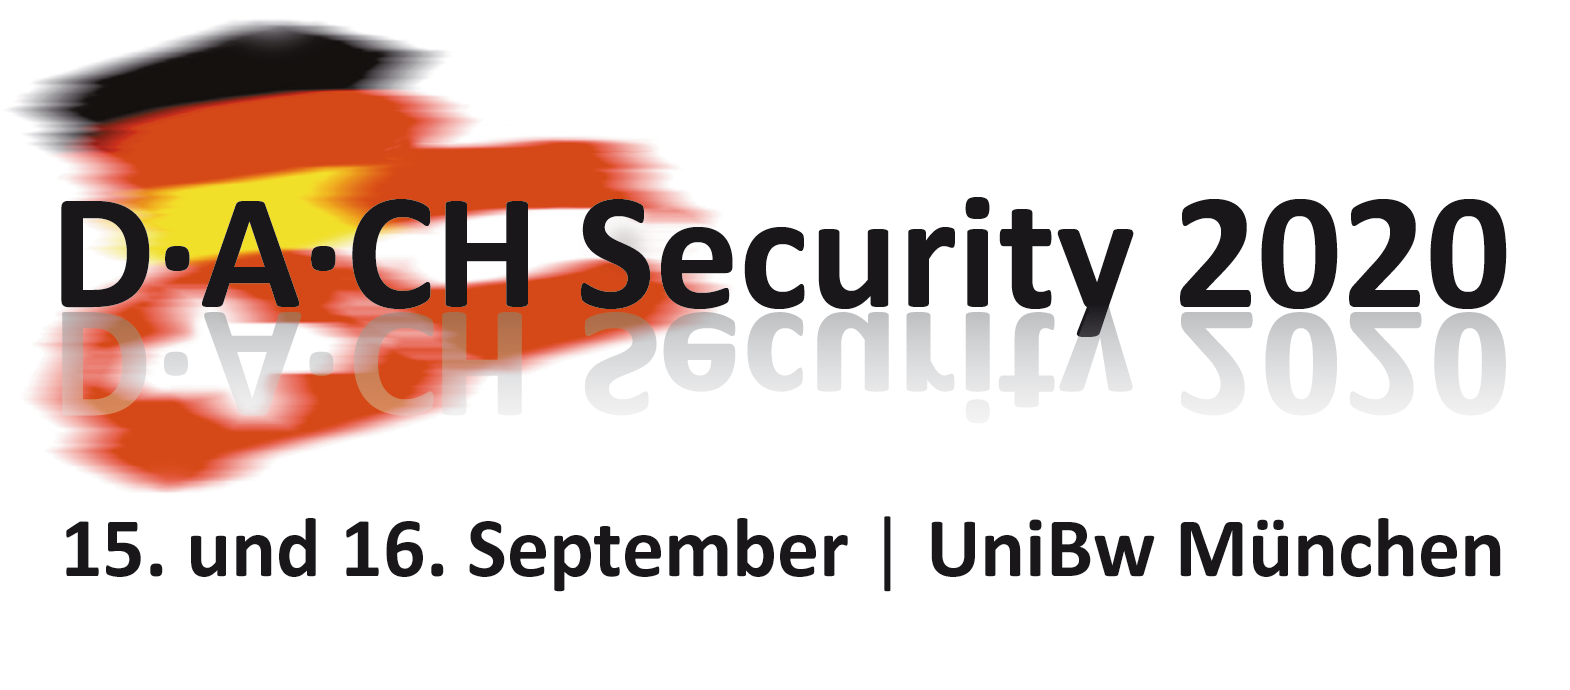 DACH Security 2020